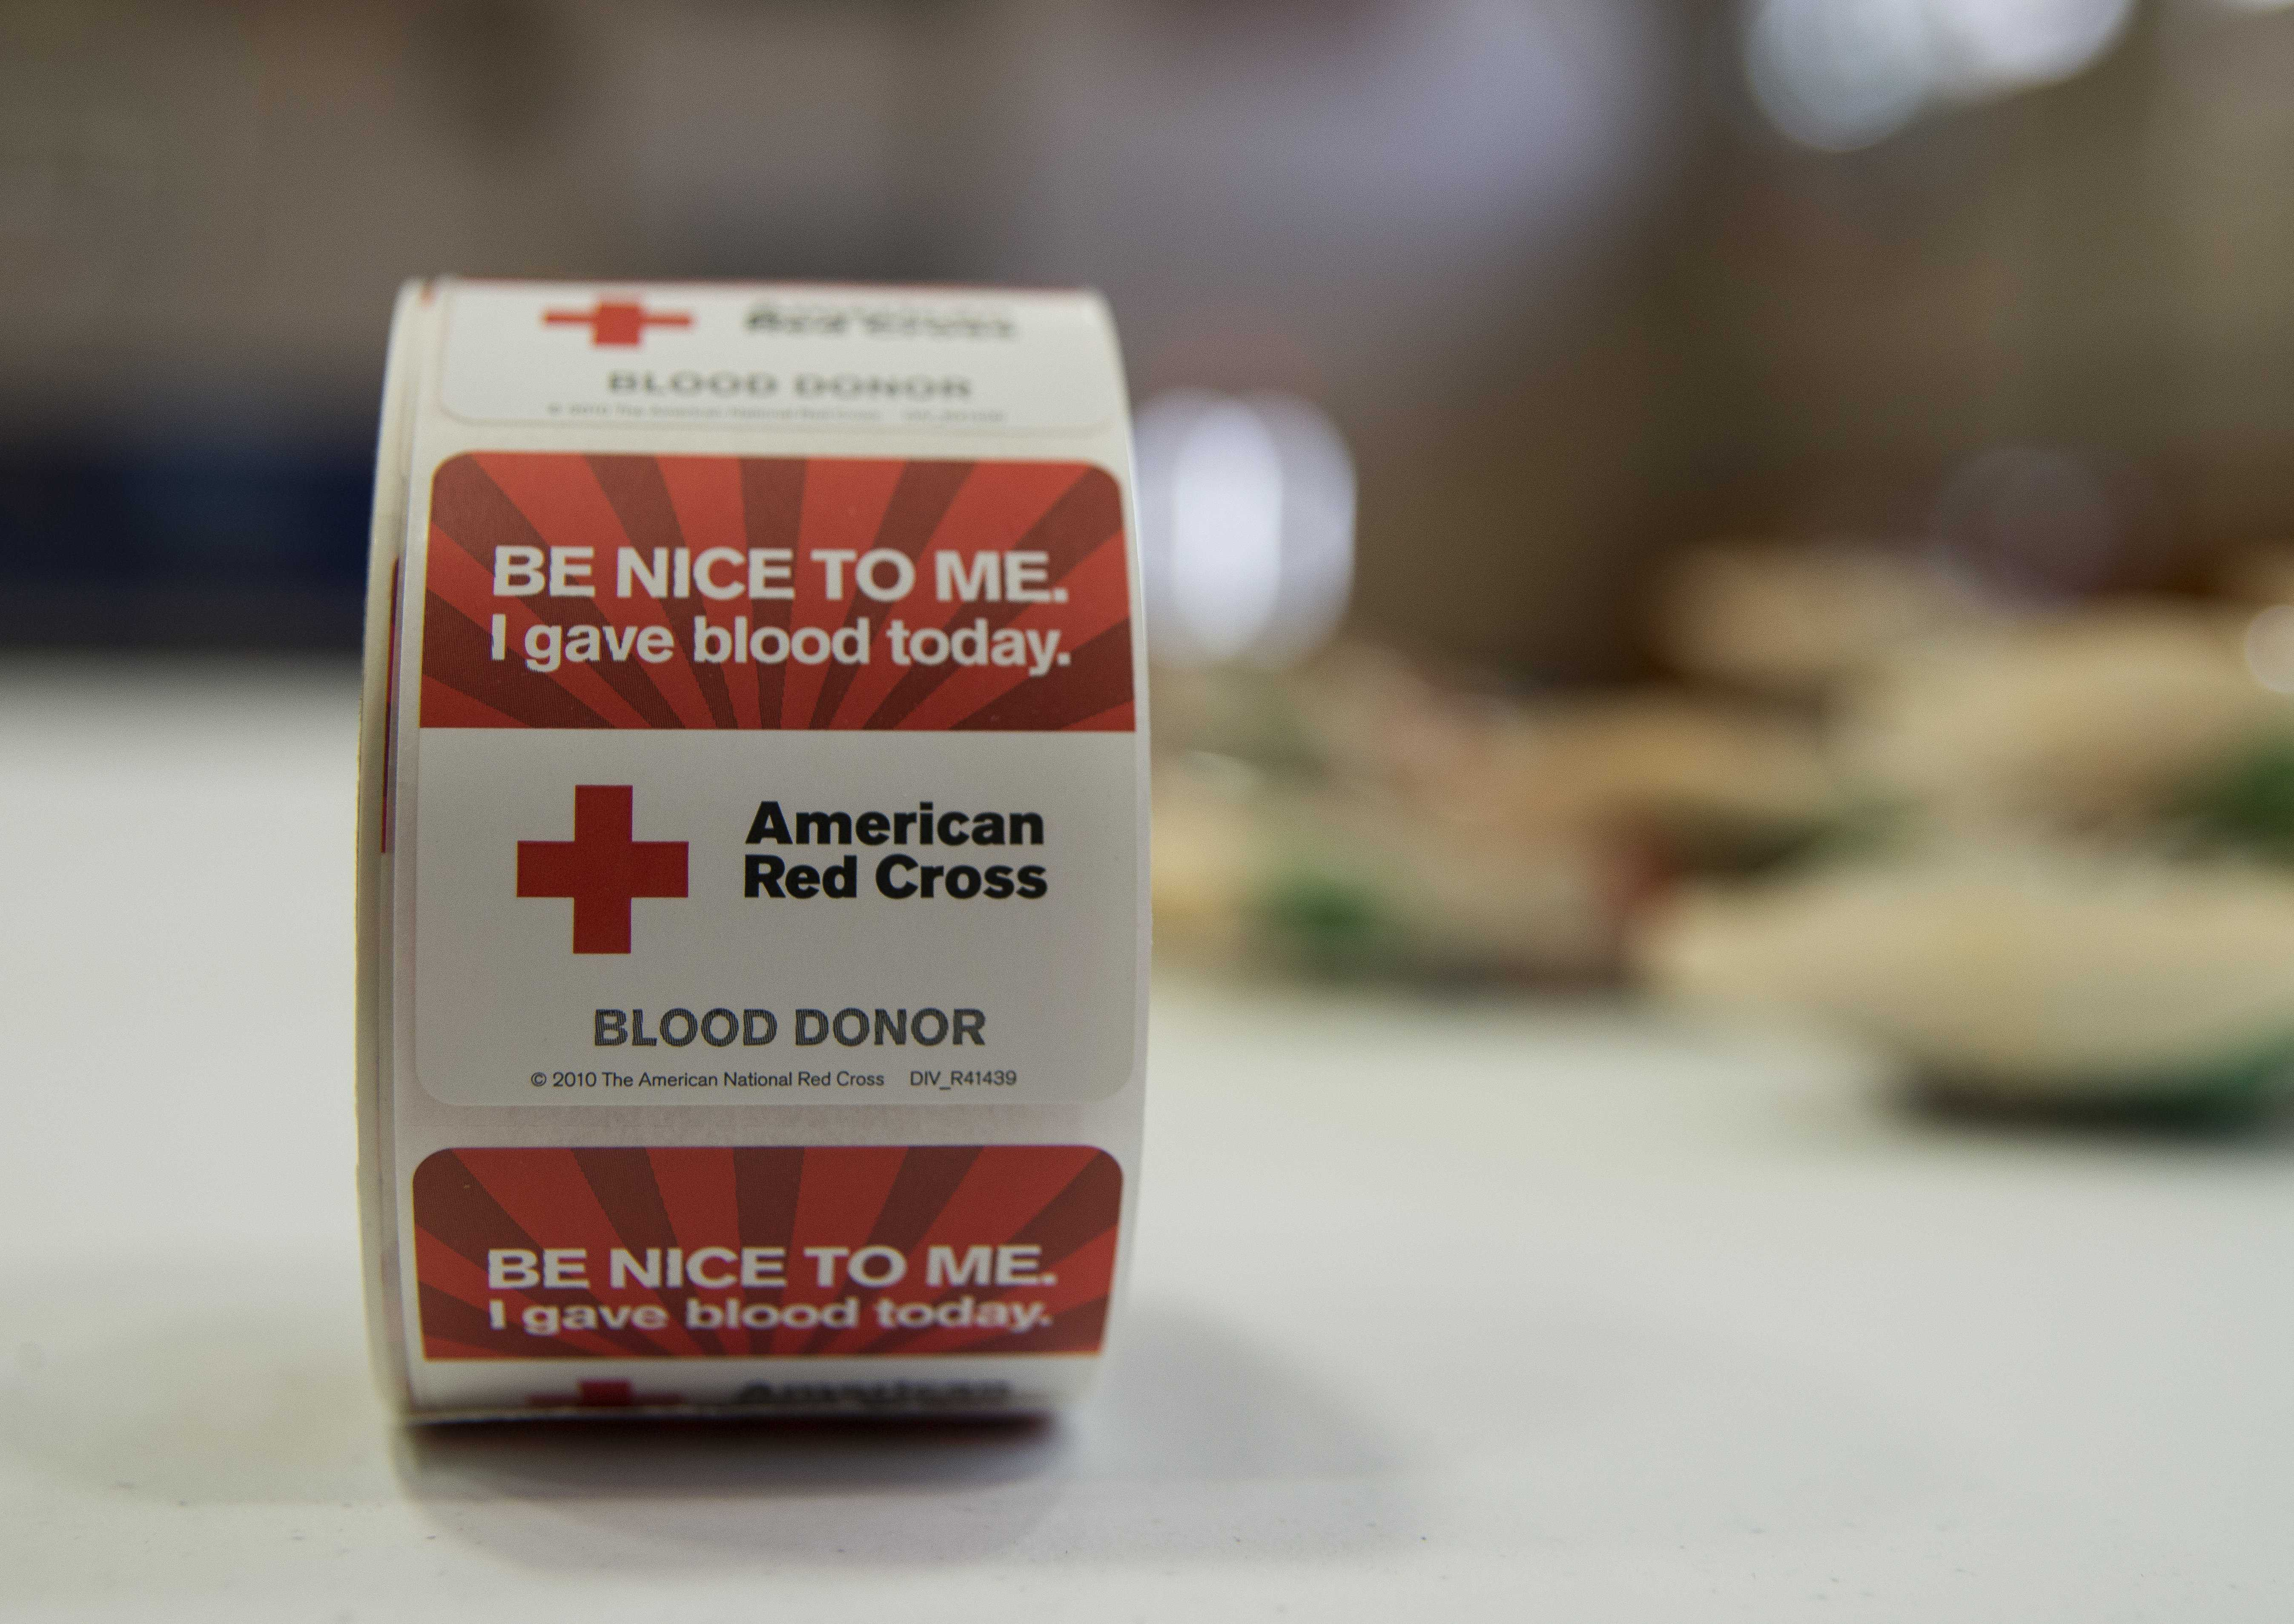 The American Red Cross blood drive was held Feb. 5, 2014 at Joint Base Charleston - Air Base, S.C. The blood donated will be sent to a Red Cross blood component laboratory where it is processed into several components; red blood cells, plasma, platelets and/or cryoprecipitate. A single blood donation may help up to three different people. (U.S. Air Force photo/Senior Airman Ashlee Galloway)